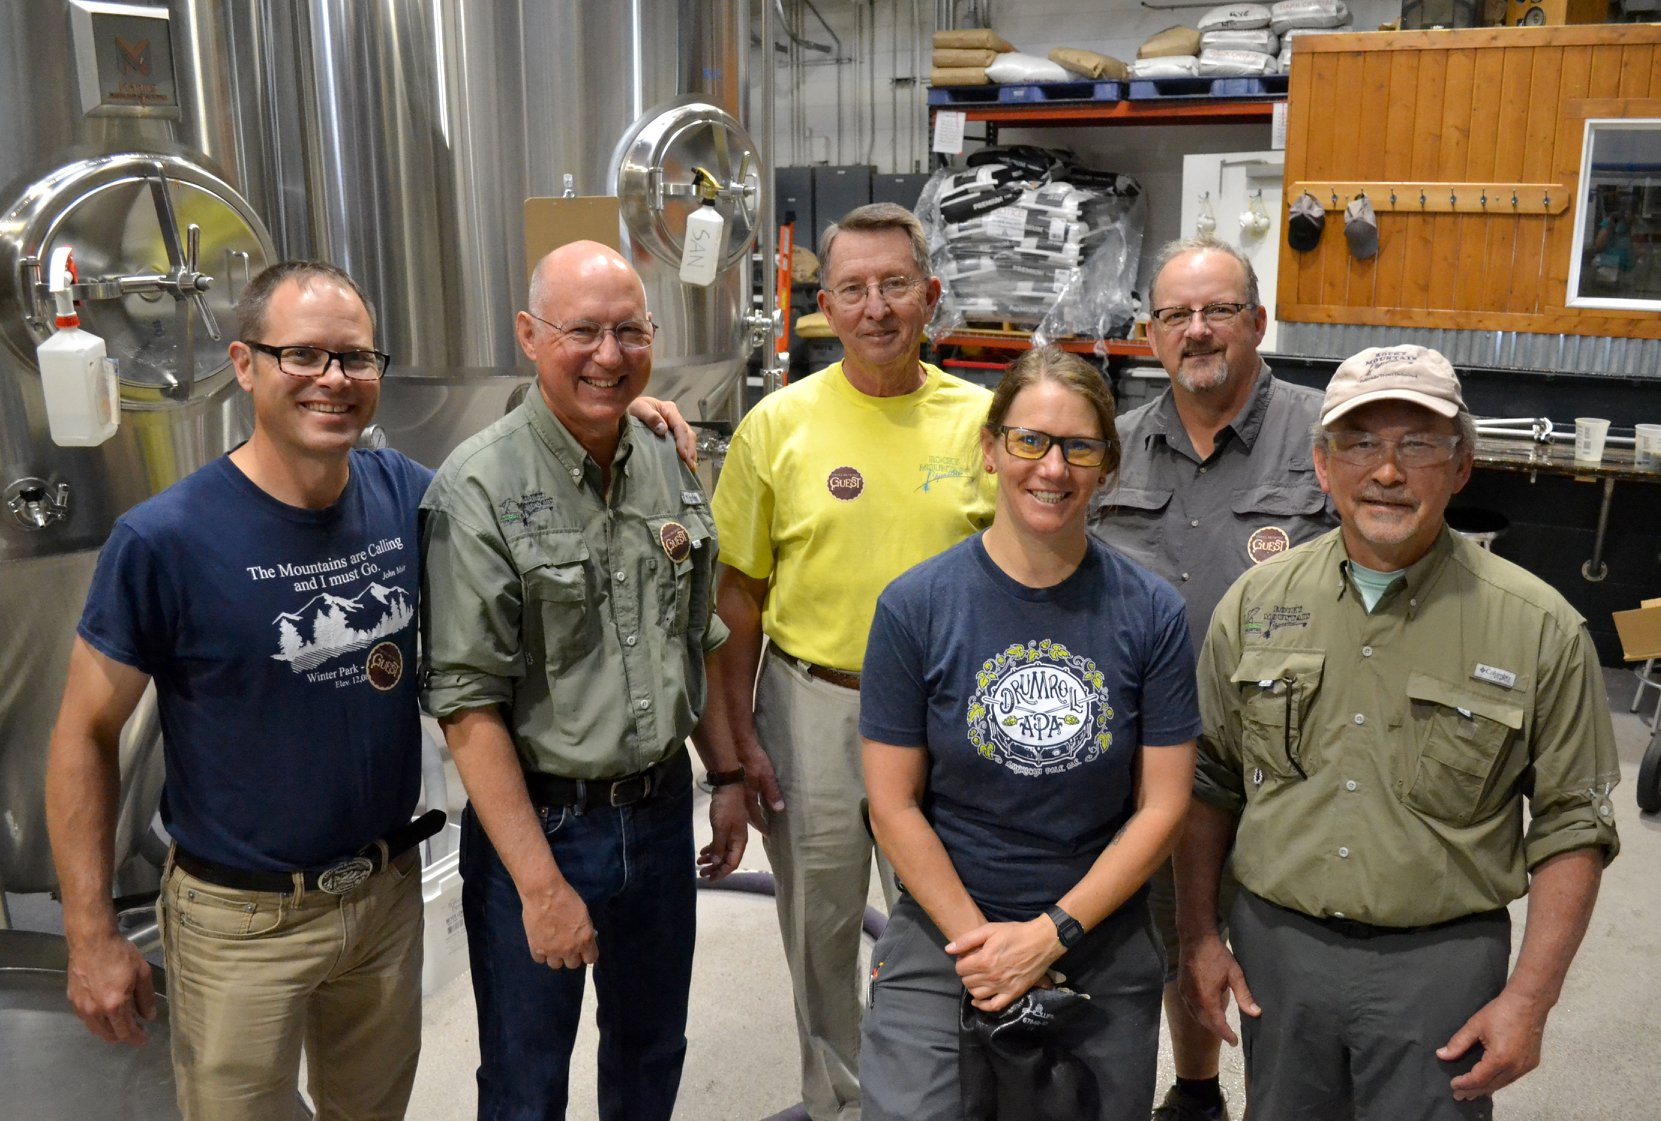 On May 30, partners from the U.S. Forest Service and Trout Unlimited went backstage at Odell Brewing Co. in Fort Collins where they brewed up  conversation about restoring Colorado's native cutthroat trout while making a limited edition beer for the cause. (From Left) U.S. Forest Service Fisheries Biologist Matt Fairchild;  Mickey McGuire, President, Rocky Mountain Flycasters Chapter Trout  Unlimited; Tom Culbertson, Flycasters member; Marni Wahlquist, Head  Pilot Brewer, Odells; Dick Jefferies, Colorado Trout Unlimited Board  Member; Wil Huett, Flycasters Community Outreach chair